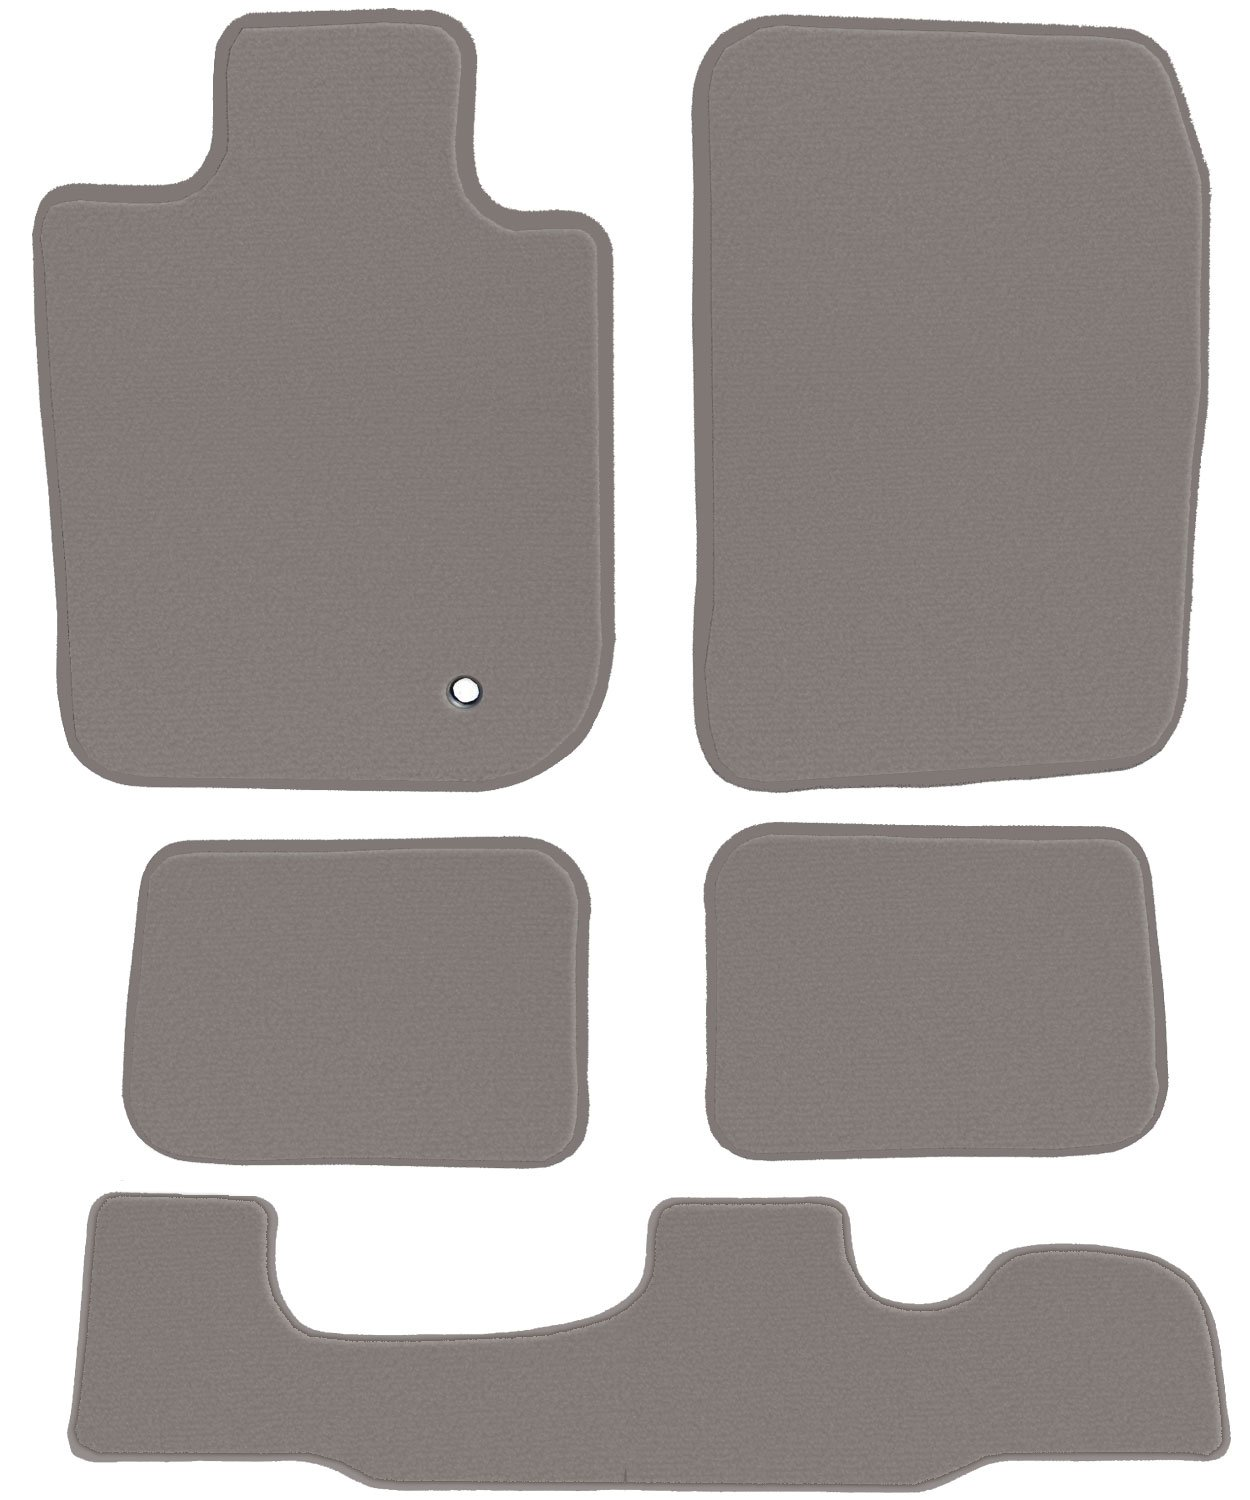 2013 Passenger 2008 2nd /& 3rd Row 2012 GGBAILEY D3547A-LSB-GY-LP Custom Fit Car Mats for 2007 2011 2014 Chevrolet Tahoe Grey Loop Driver 5 Piece Floor 2010 2009